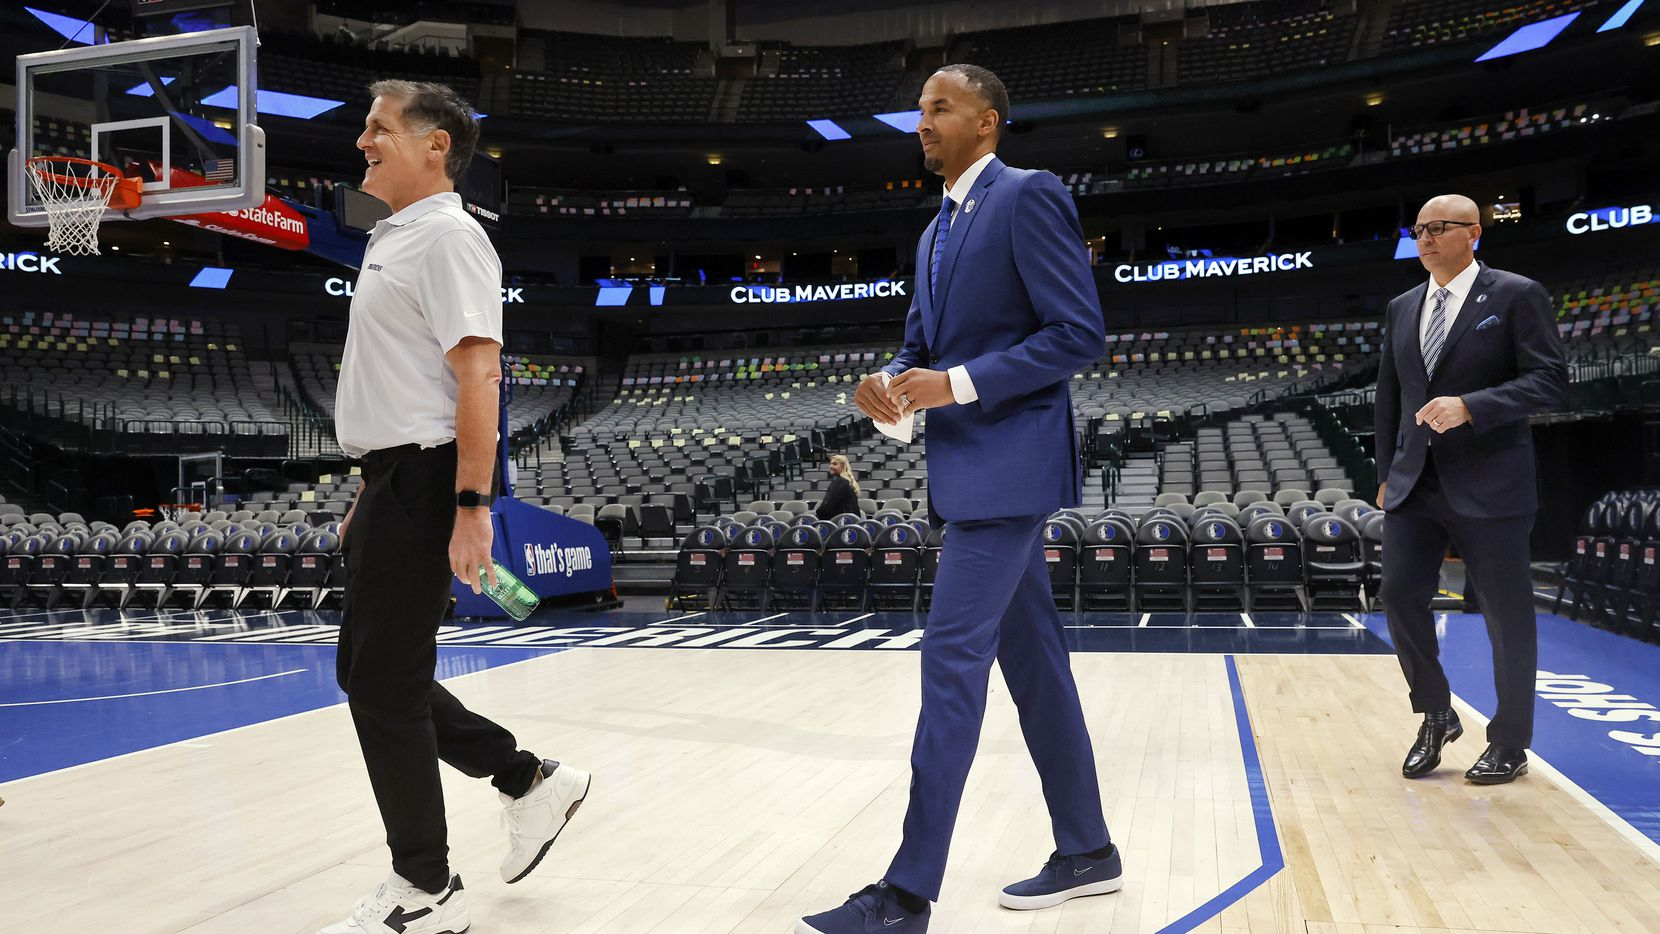 Dallas Mavericks owner Mark Cuban (left), new general manager Nico Harrison (center), and new head coach Jason Kidd arrive for a press conference to formally introduce them at the American Airlines Center, Thursday, July 15, 2021.